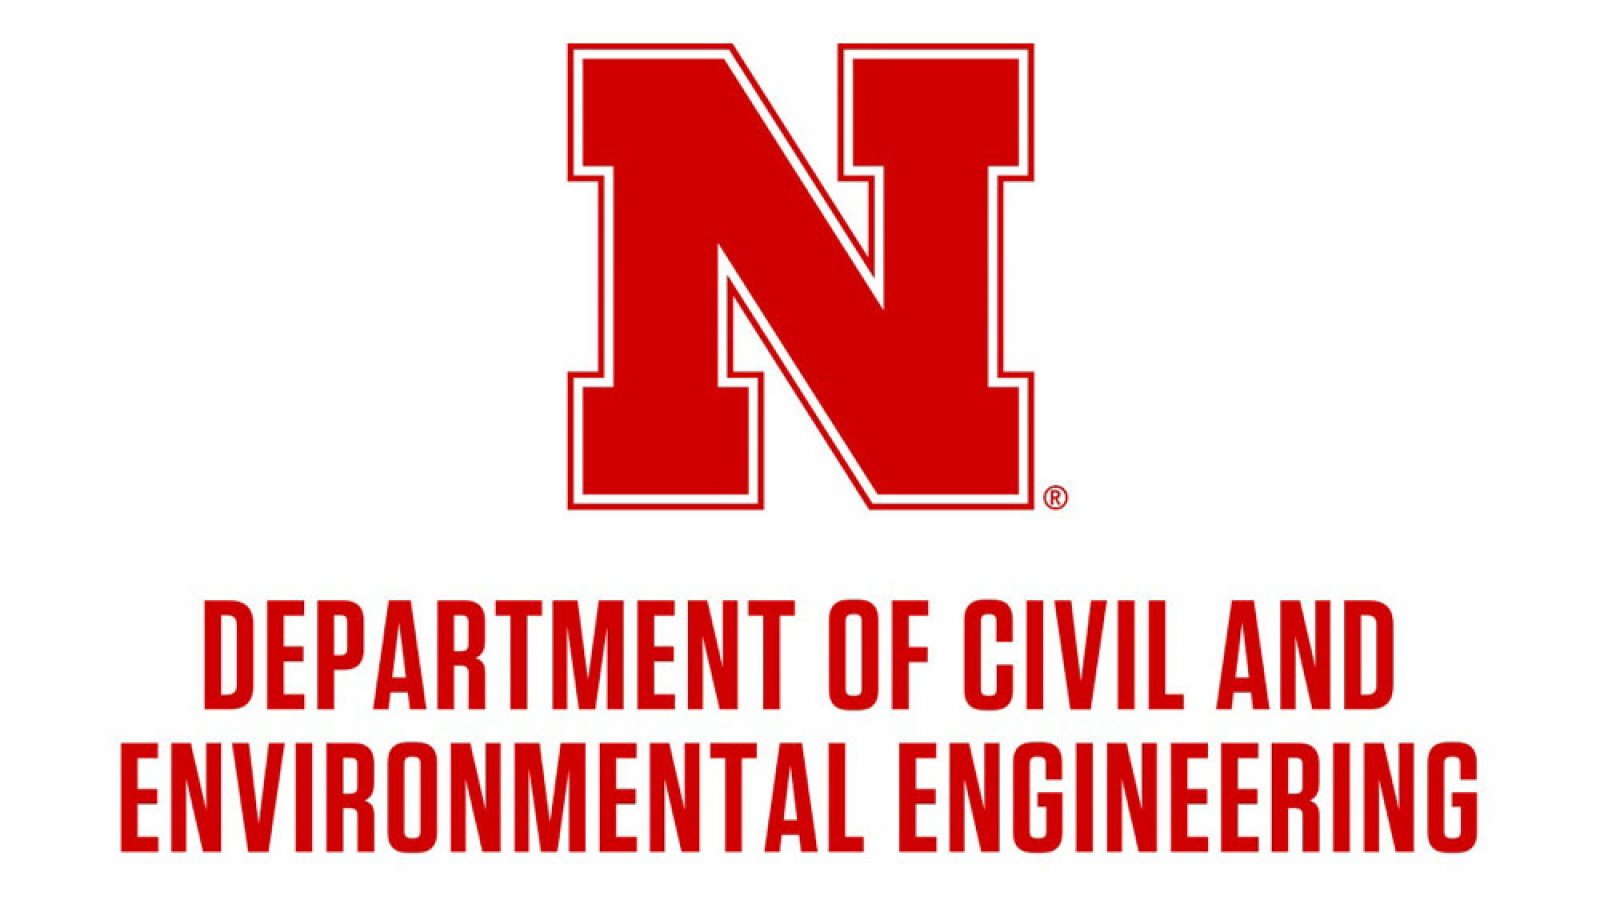 Department of Civil and Environmental Engineering.